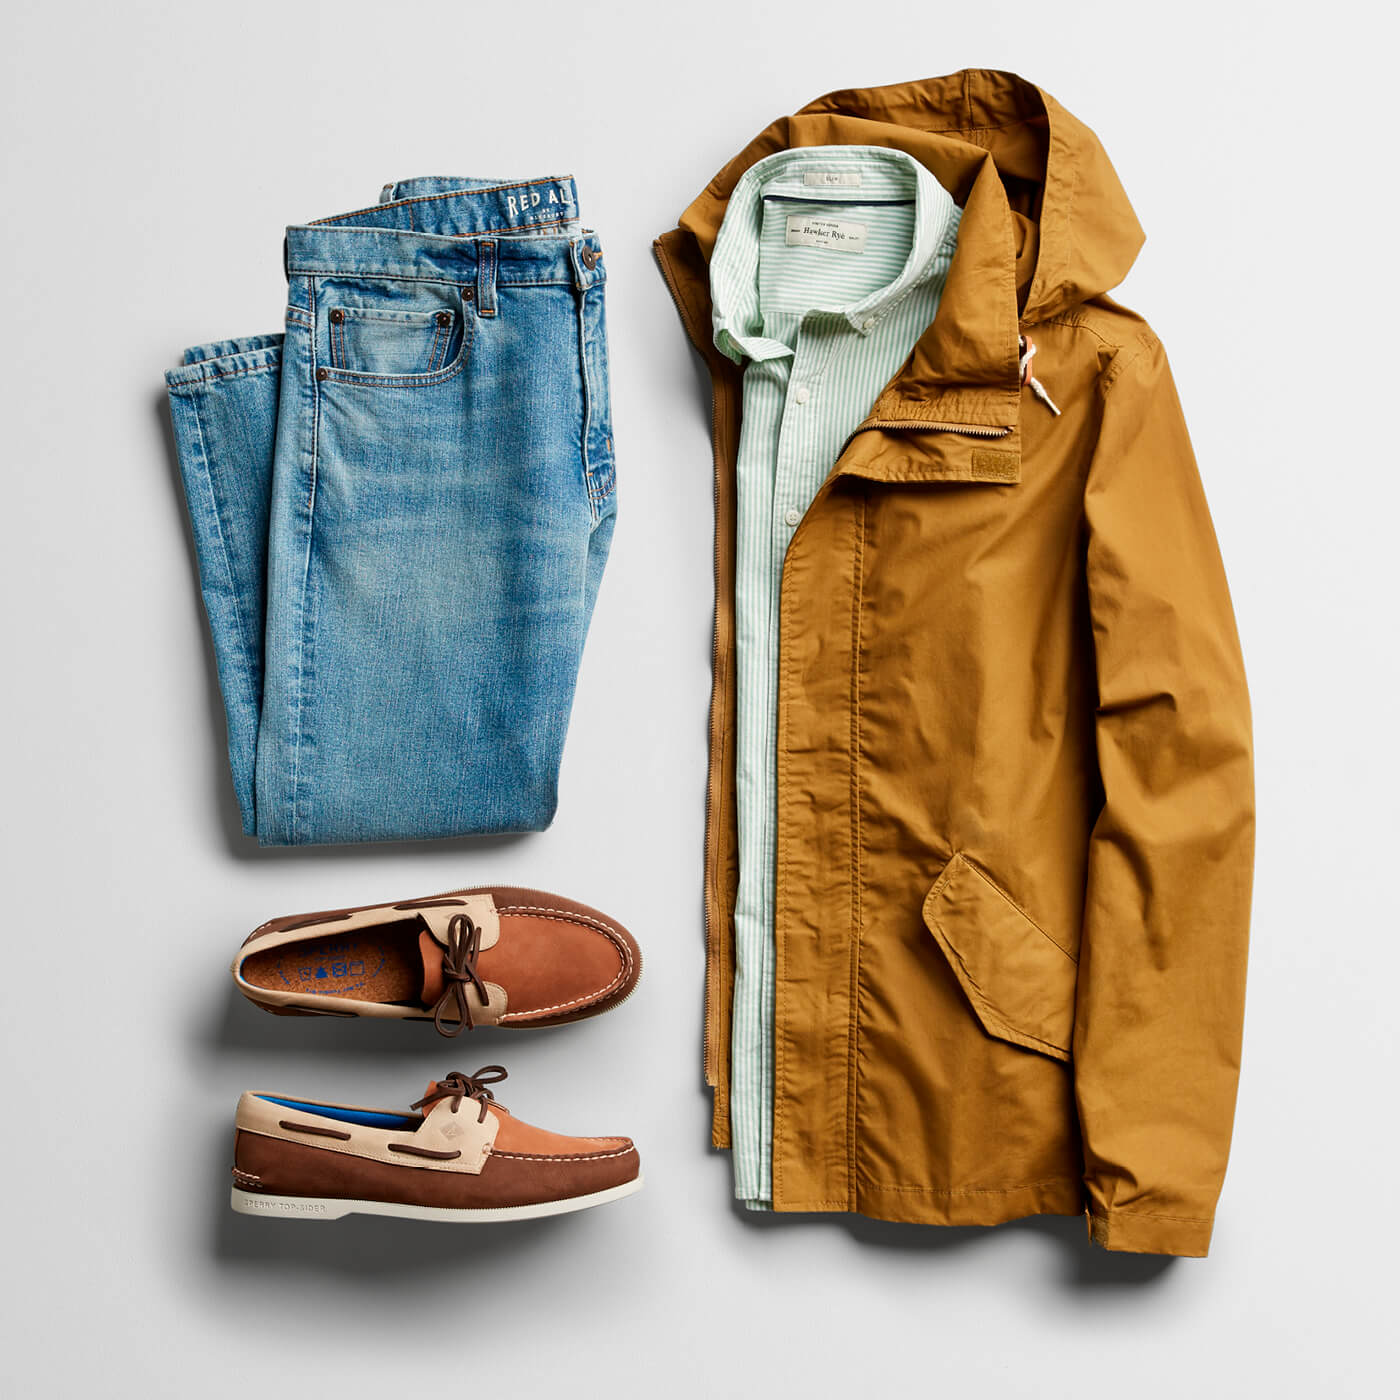 khaki jacket, green button down, light wash jeans and boat shoes